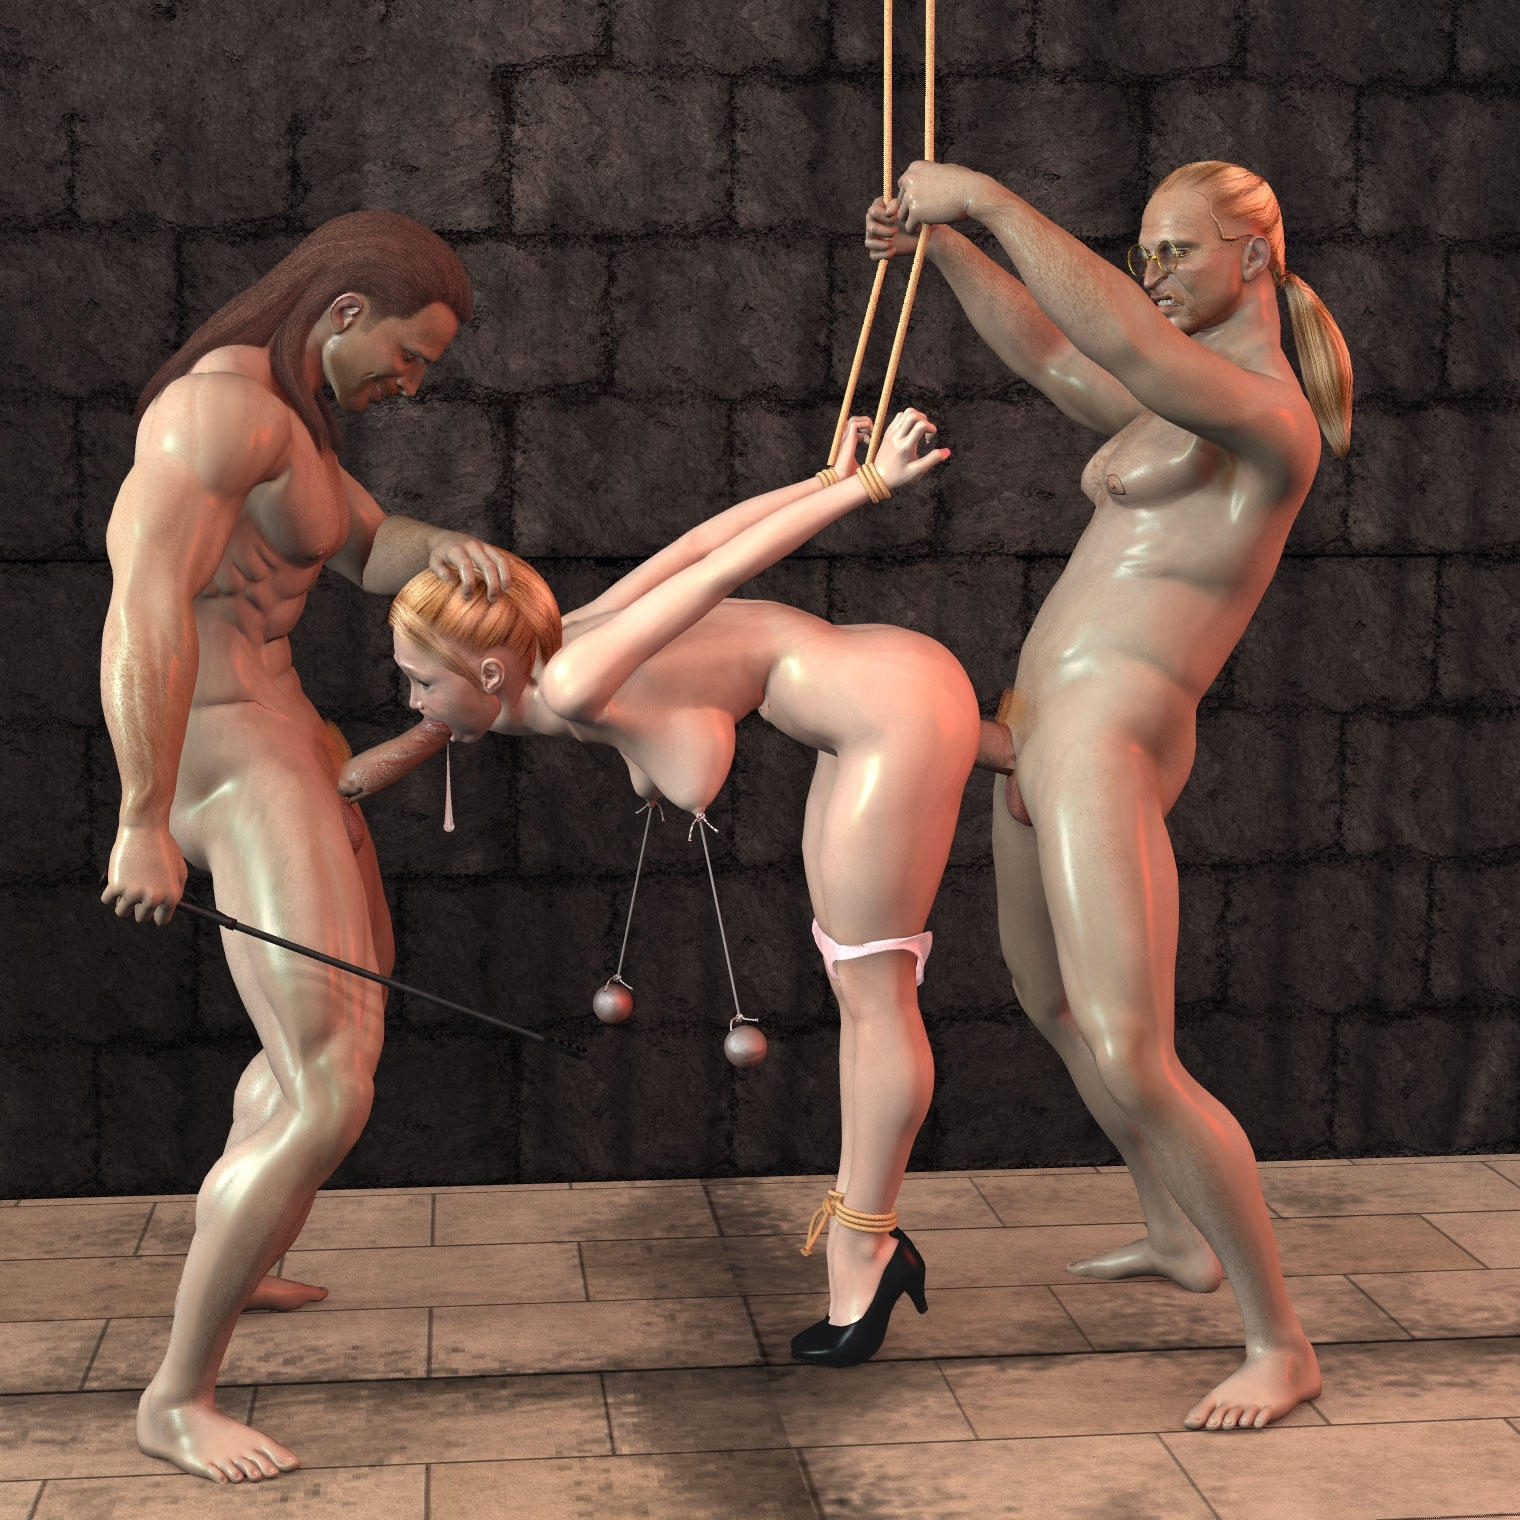 Shemal sex 3d pc games free download pron toons